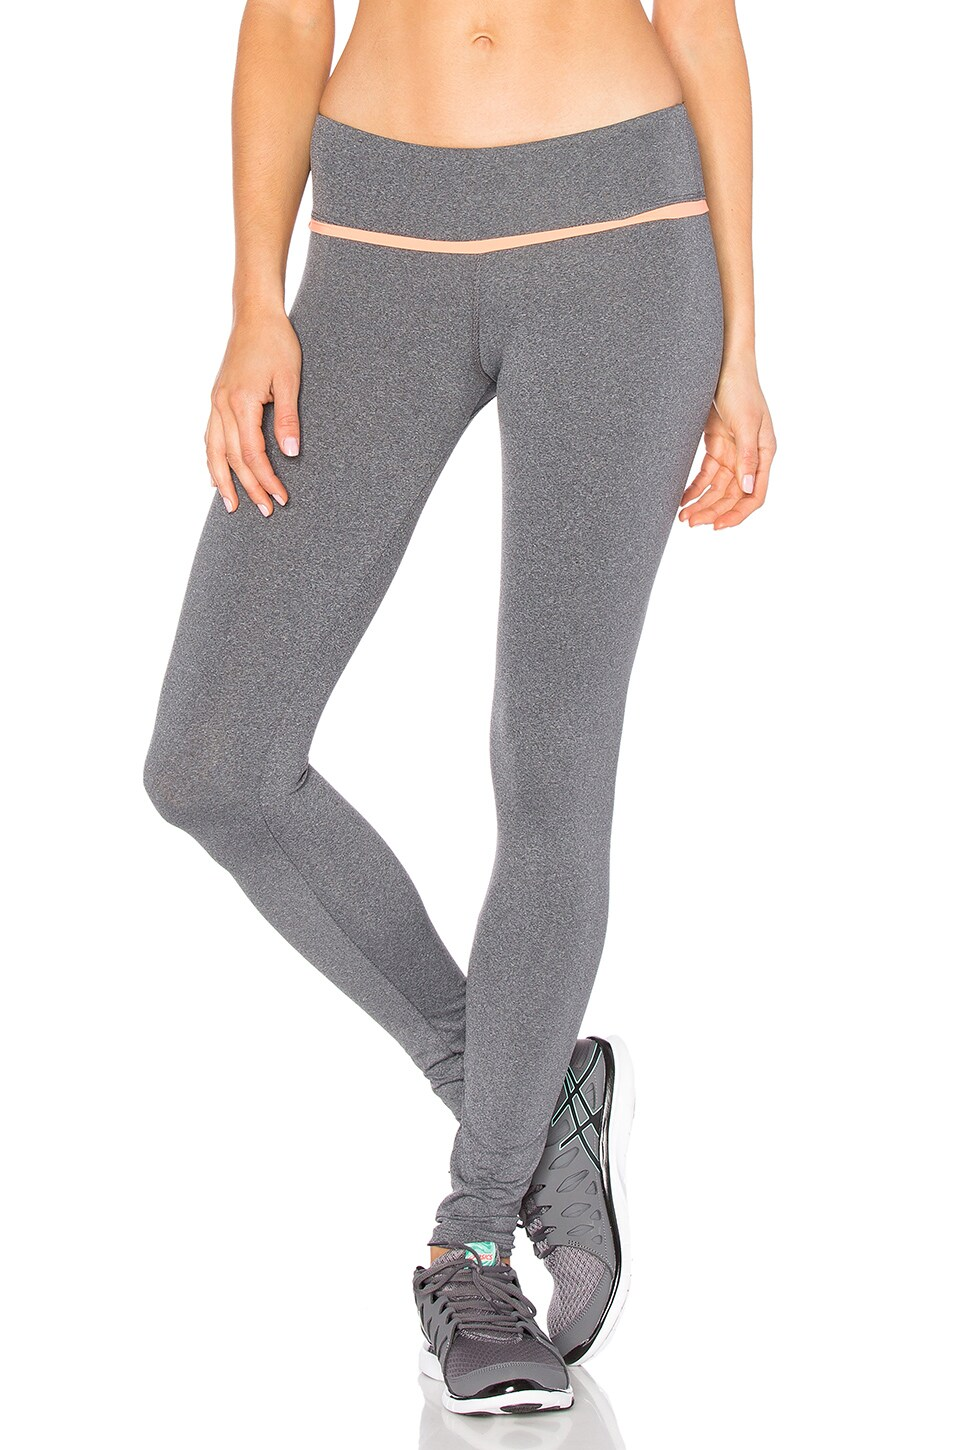 Touche LA TOUCHE x MORGAN STEWART Caspian Legging in Heather Charcoal & Electric